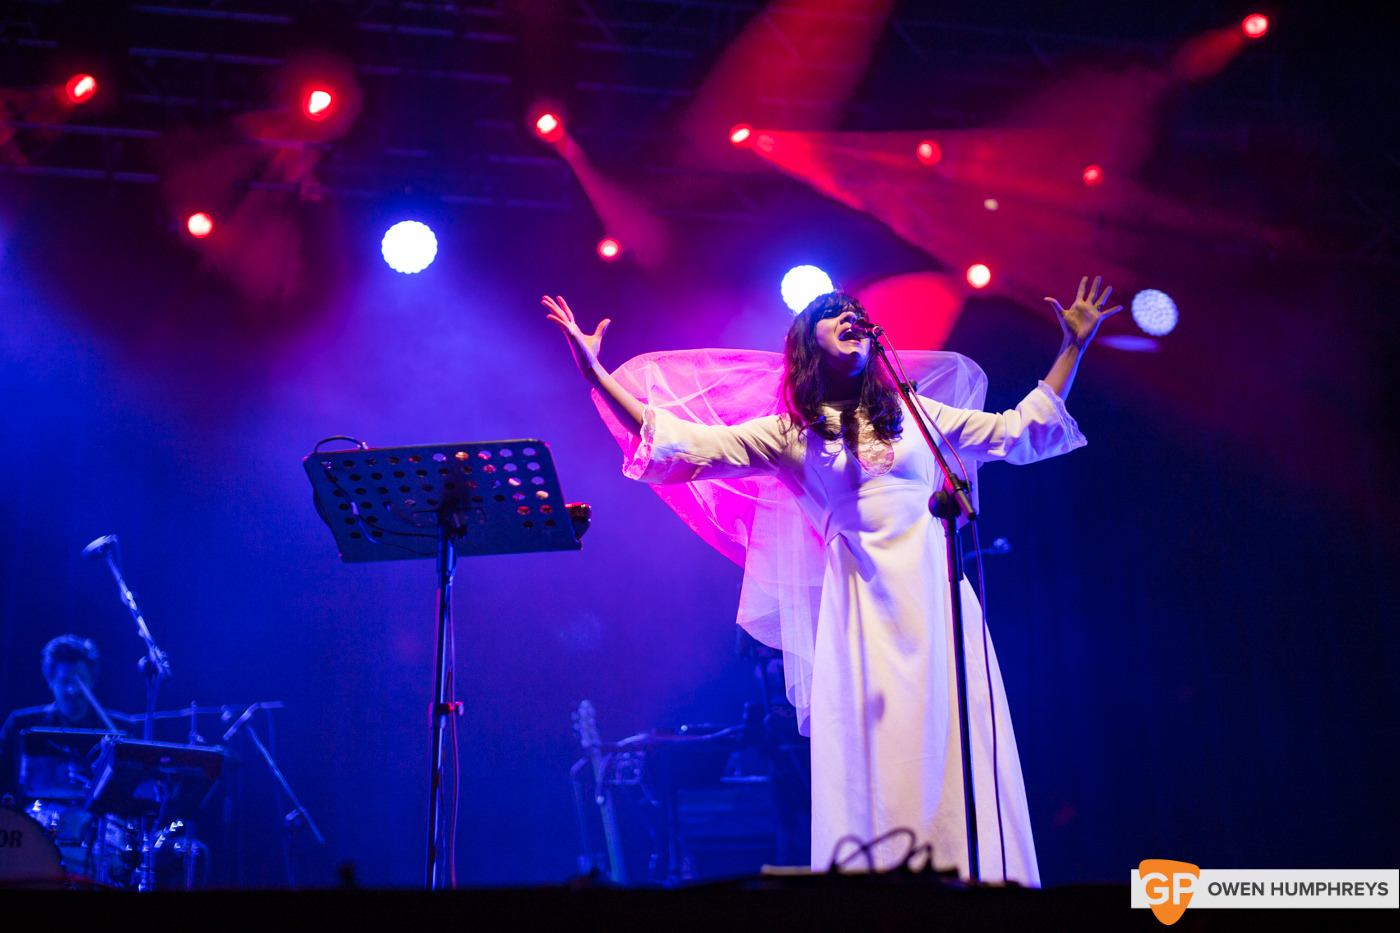 Bat For Lashes at Electric Picnic by Owen Humphreys